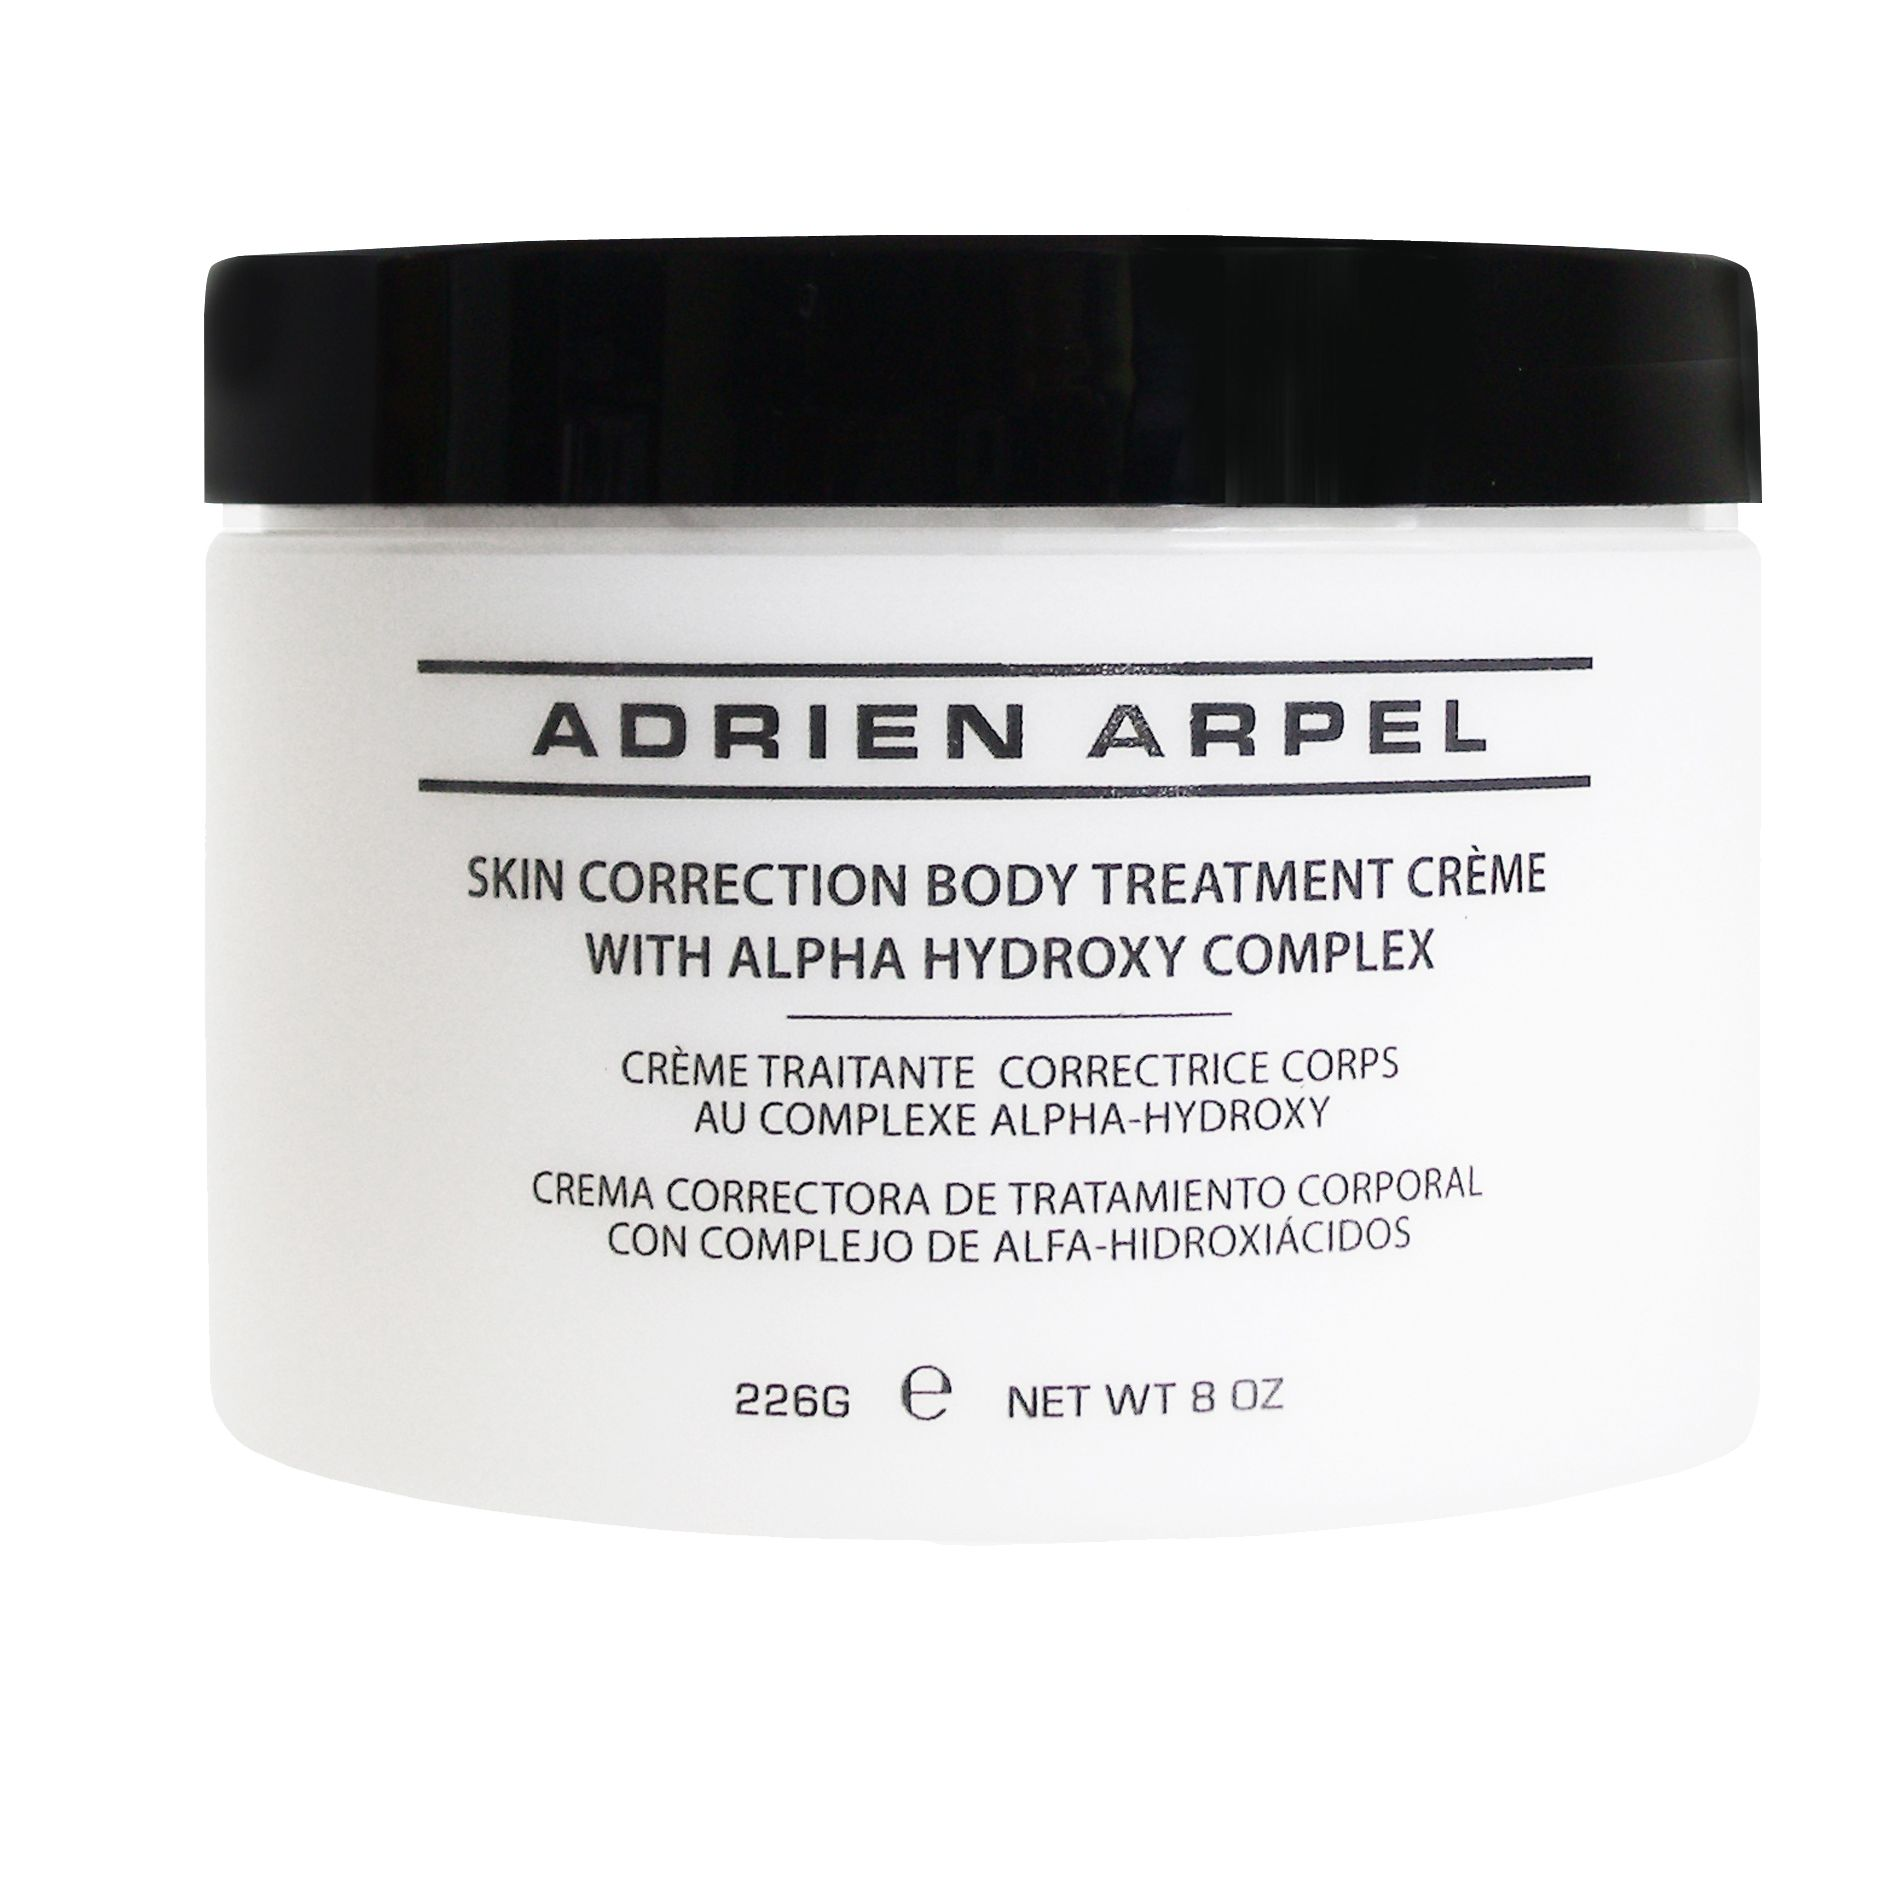 Adrien Arpel 4-in-1 Skin Correction Body Creme 8 oz